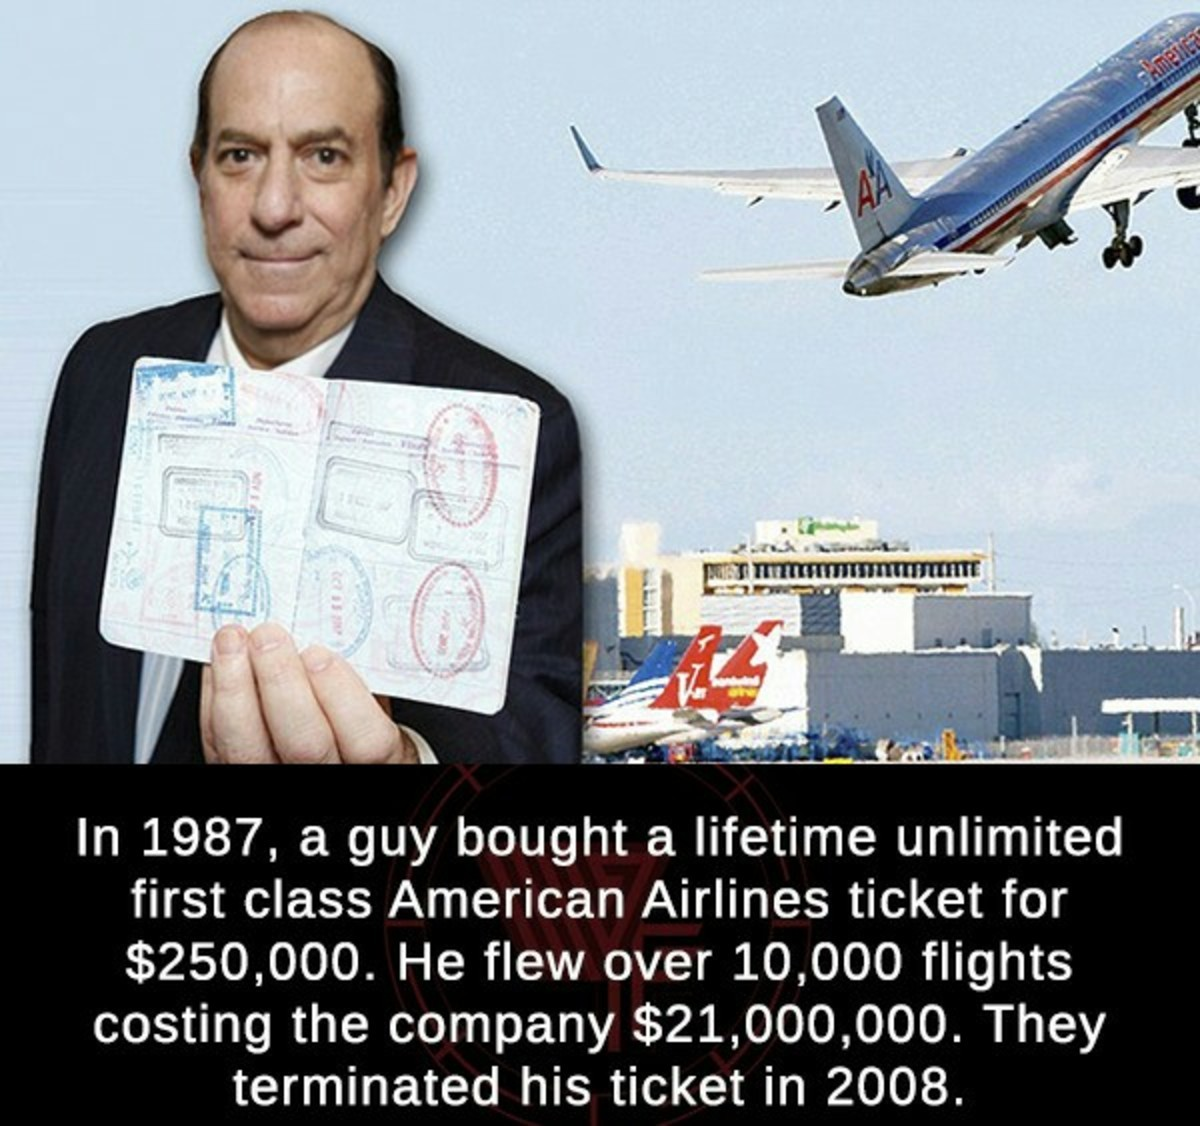 1987 American Airlines ticket. .. >lifetime ticket >they terminated it they killed that man didn't they